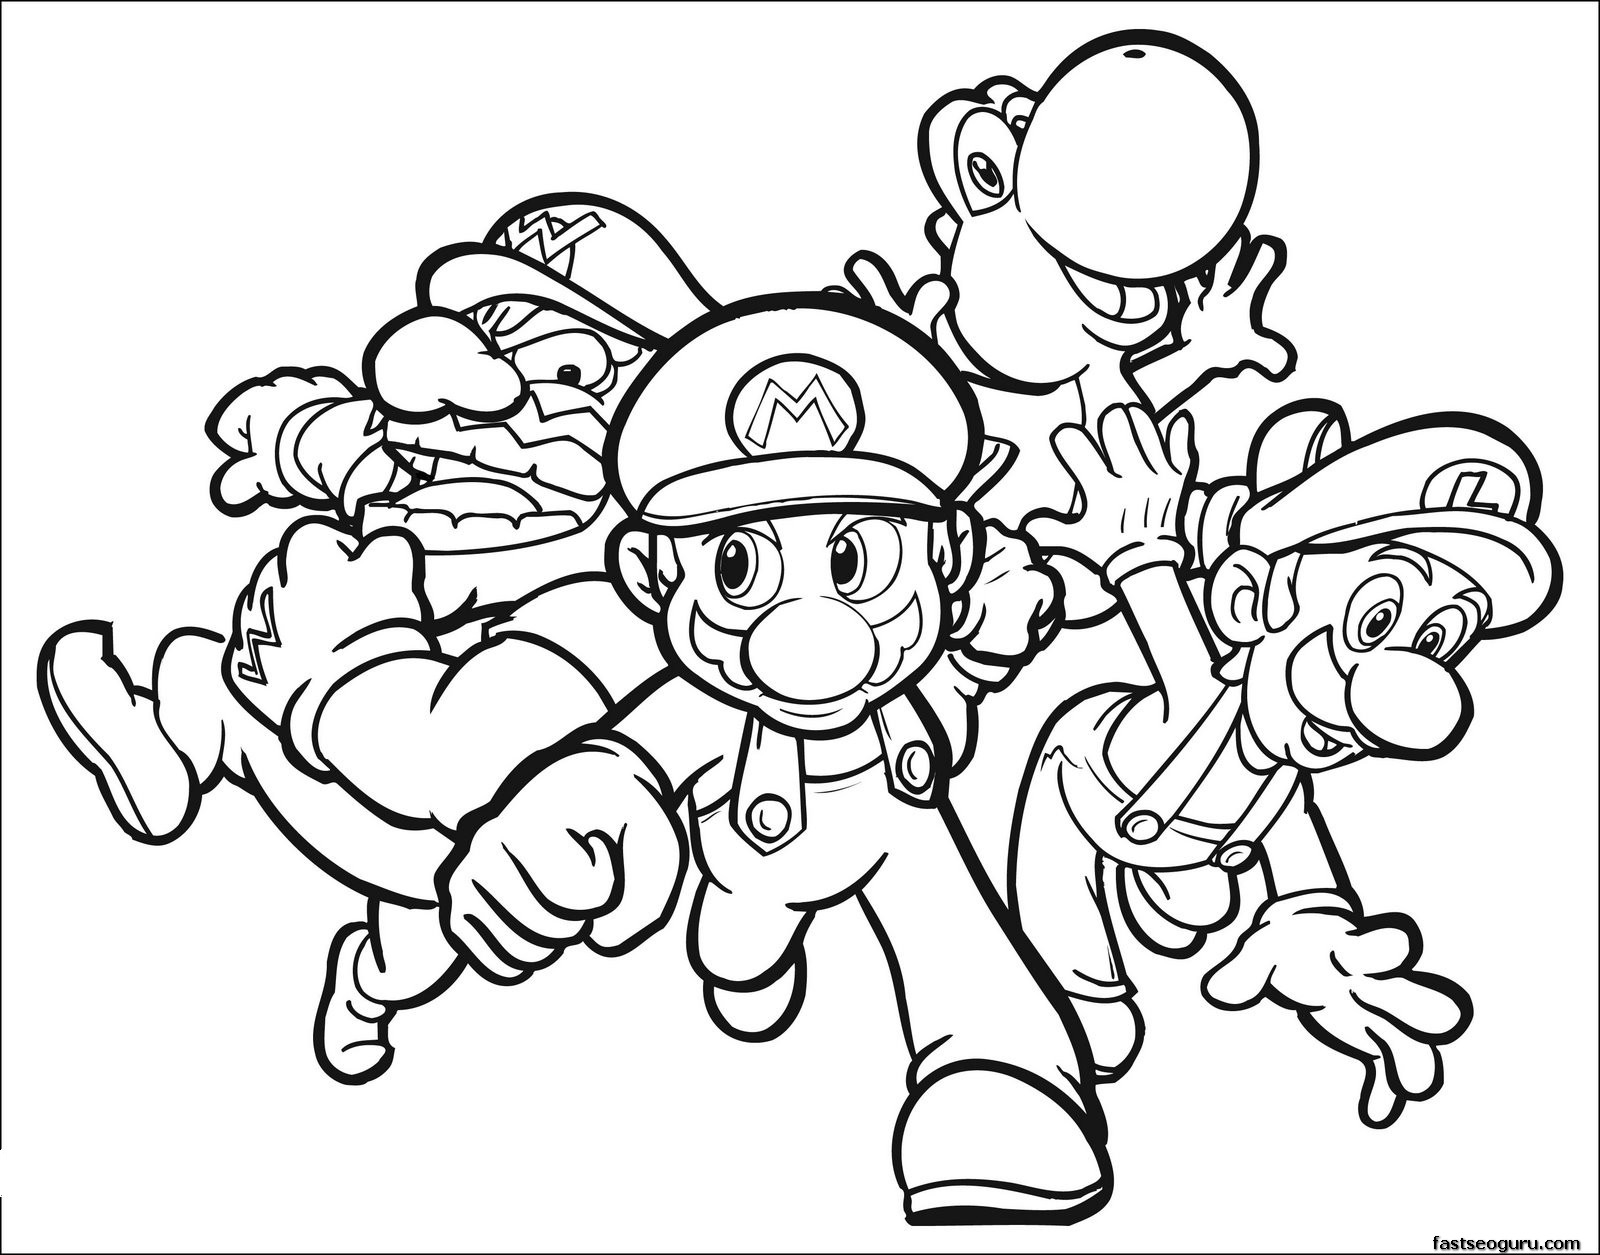 Coloring Pages Coloring Pages For Printing coloring pages to print for kids mario color printing colouring for